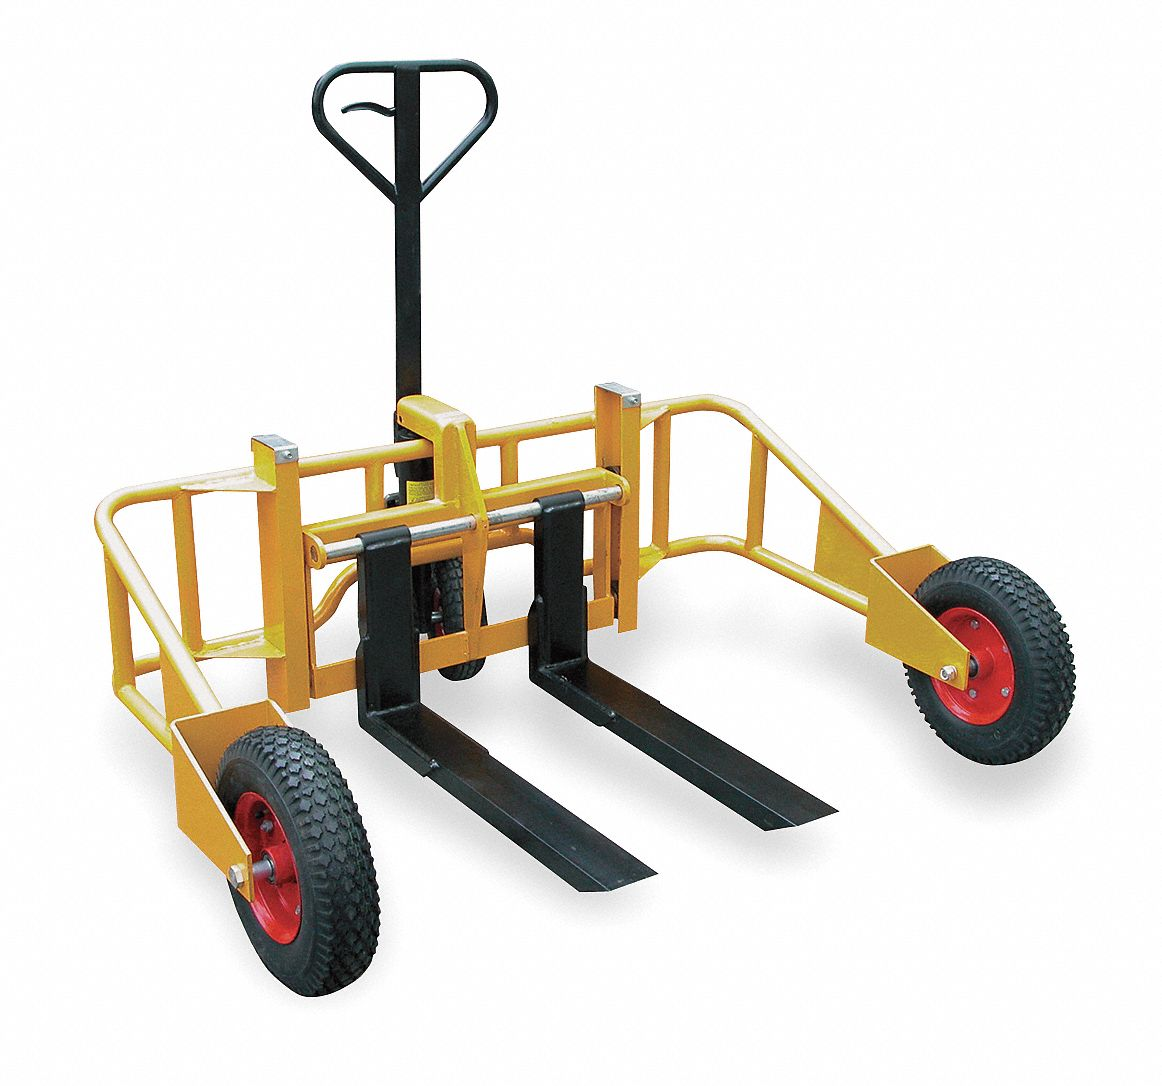 Grainger Approved Specialty All Terrain Manual Pallet Jack Manual Guide